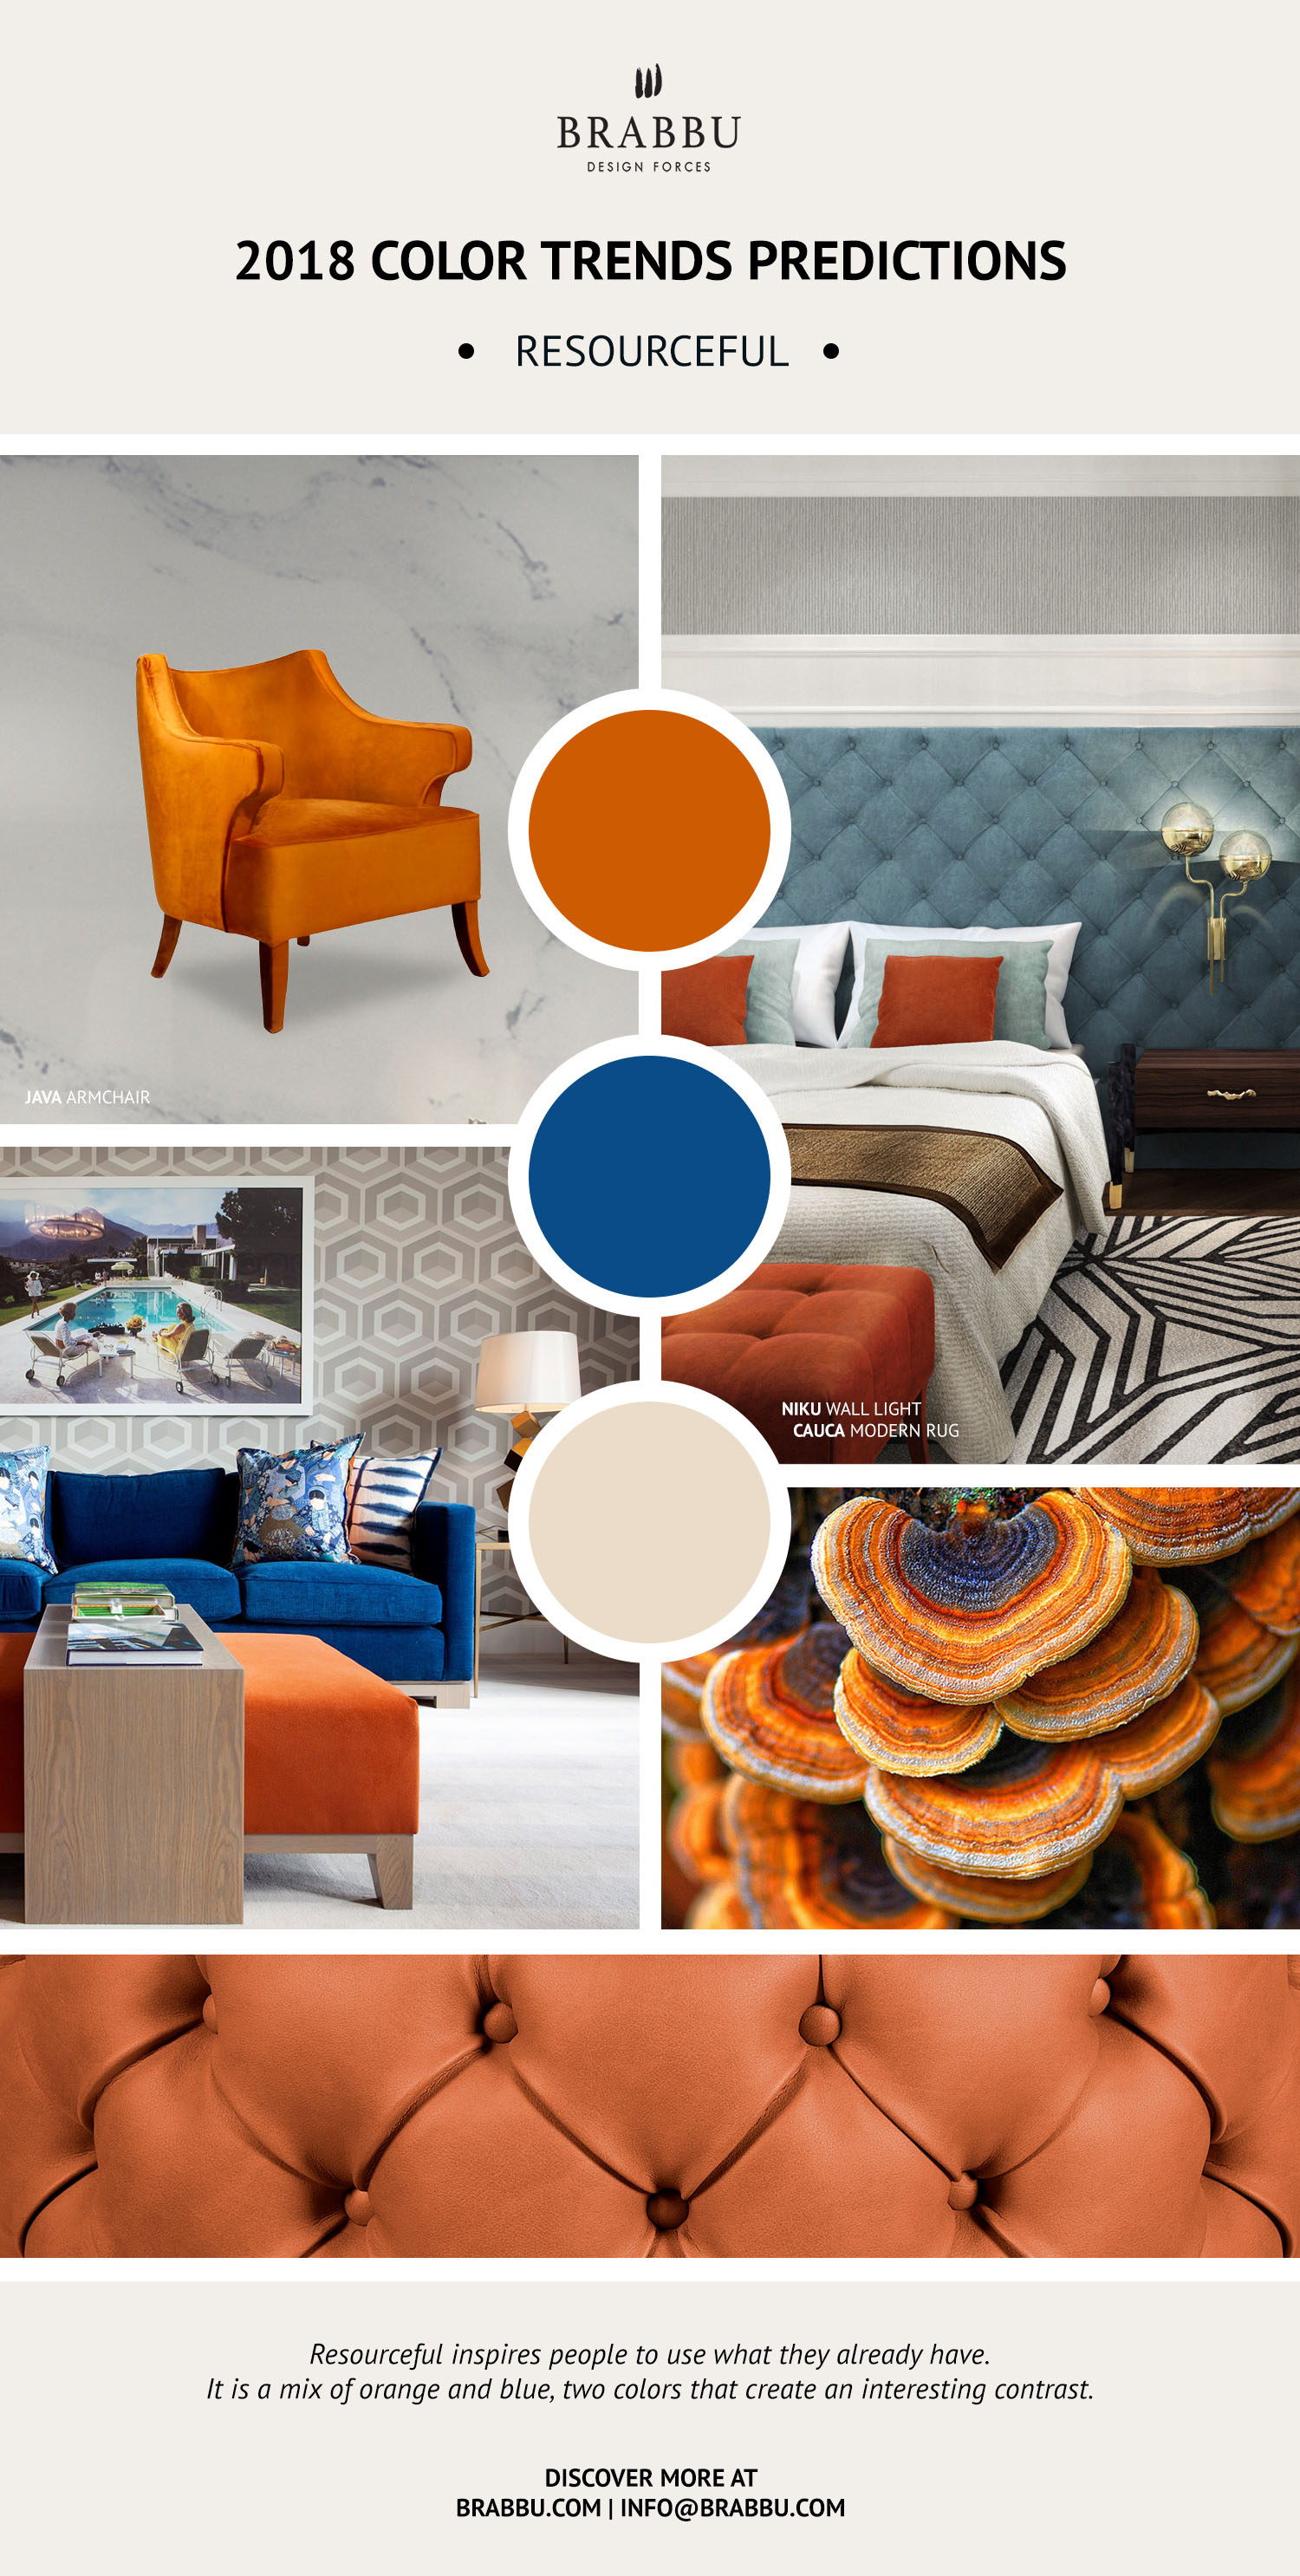 Pantone Color Trend Predictions For 2018 color trend Pantone Color Trend Predictions For 2018 3 1